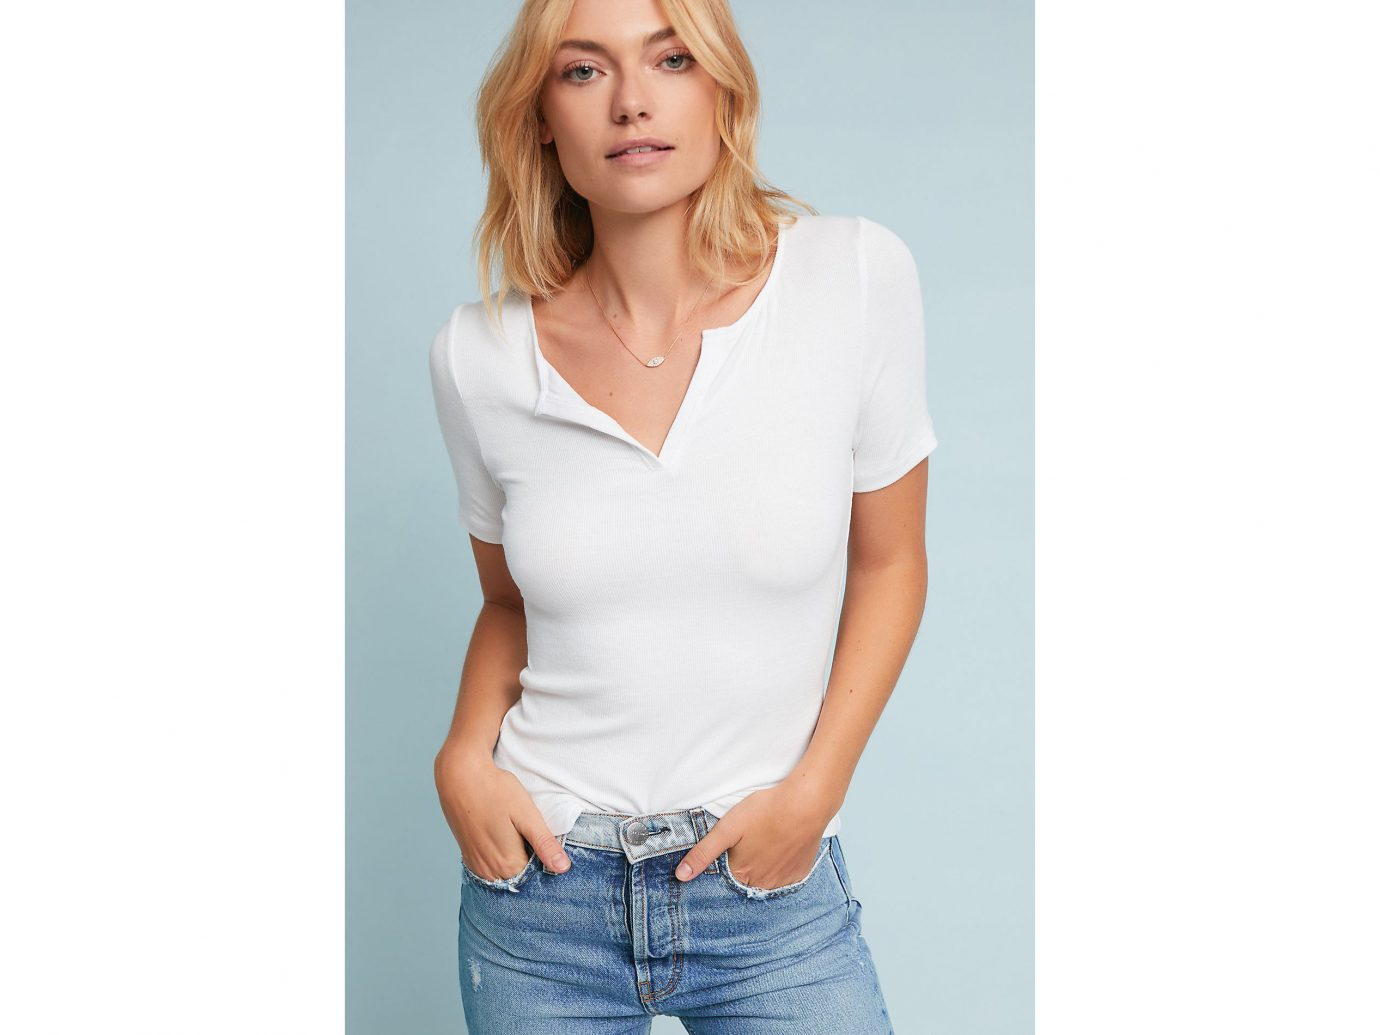 Spring Travel Style + Design Summer Travel Travel Lifestyle Travel Shop person clothing white woman sleeve neck posing t shirt shoulder arm fashion model model muscle supermodel top undershirt joint